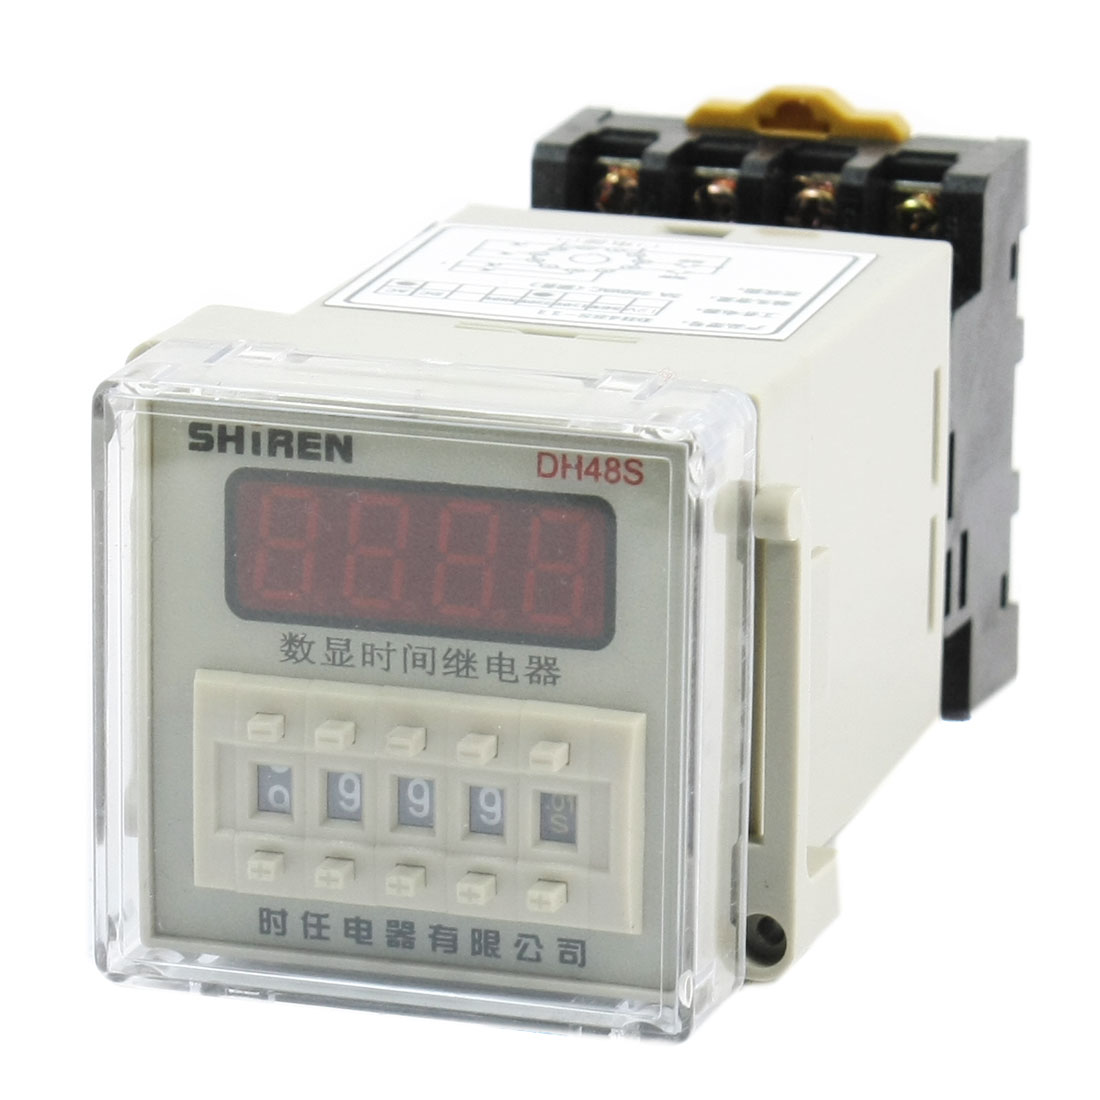 AC 220V DPDT Red Digital Display 0.01s-9999h Time Delay Relay Timer DH48S-11